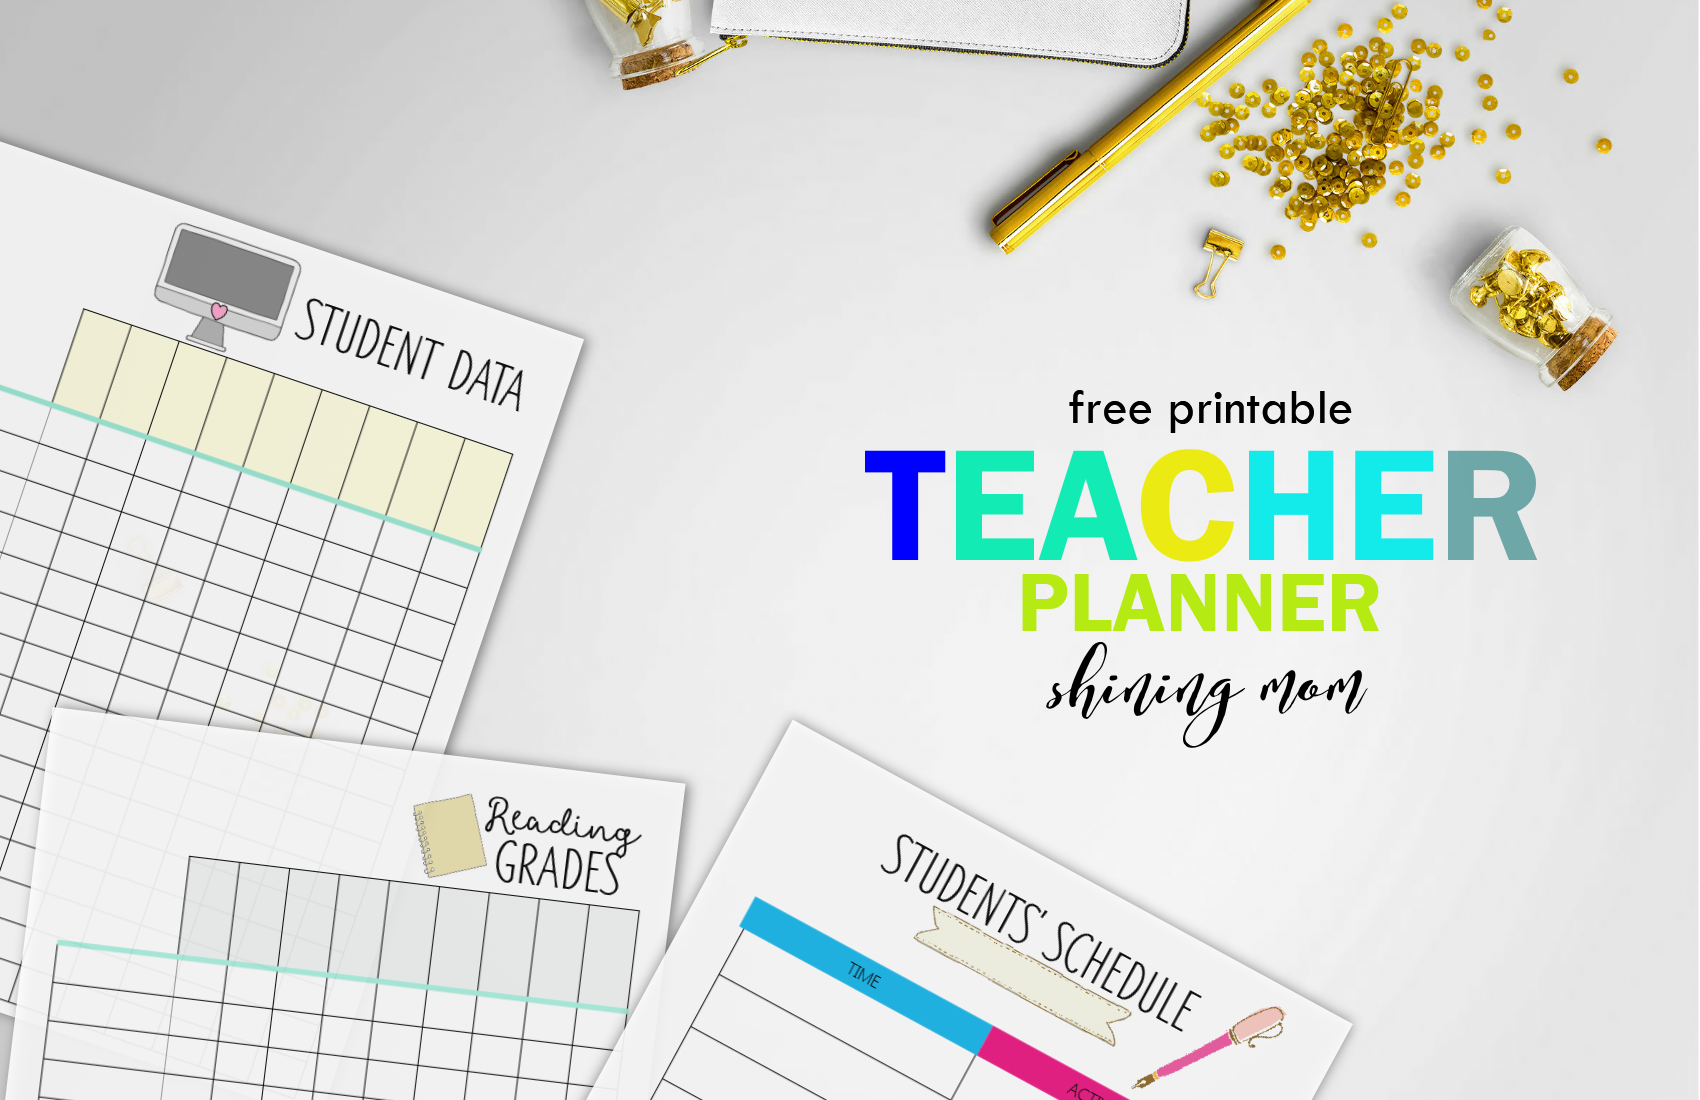 Free Teacher Binder Printables: Over 25 Pretty Planning Templates! - Printable Teacher Planner Free